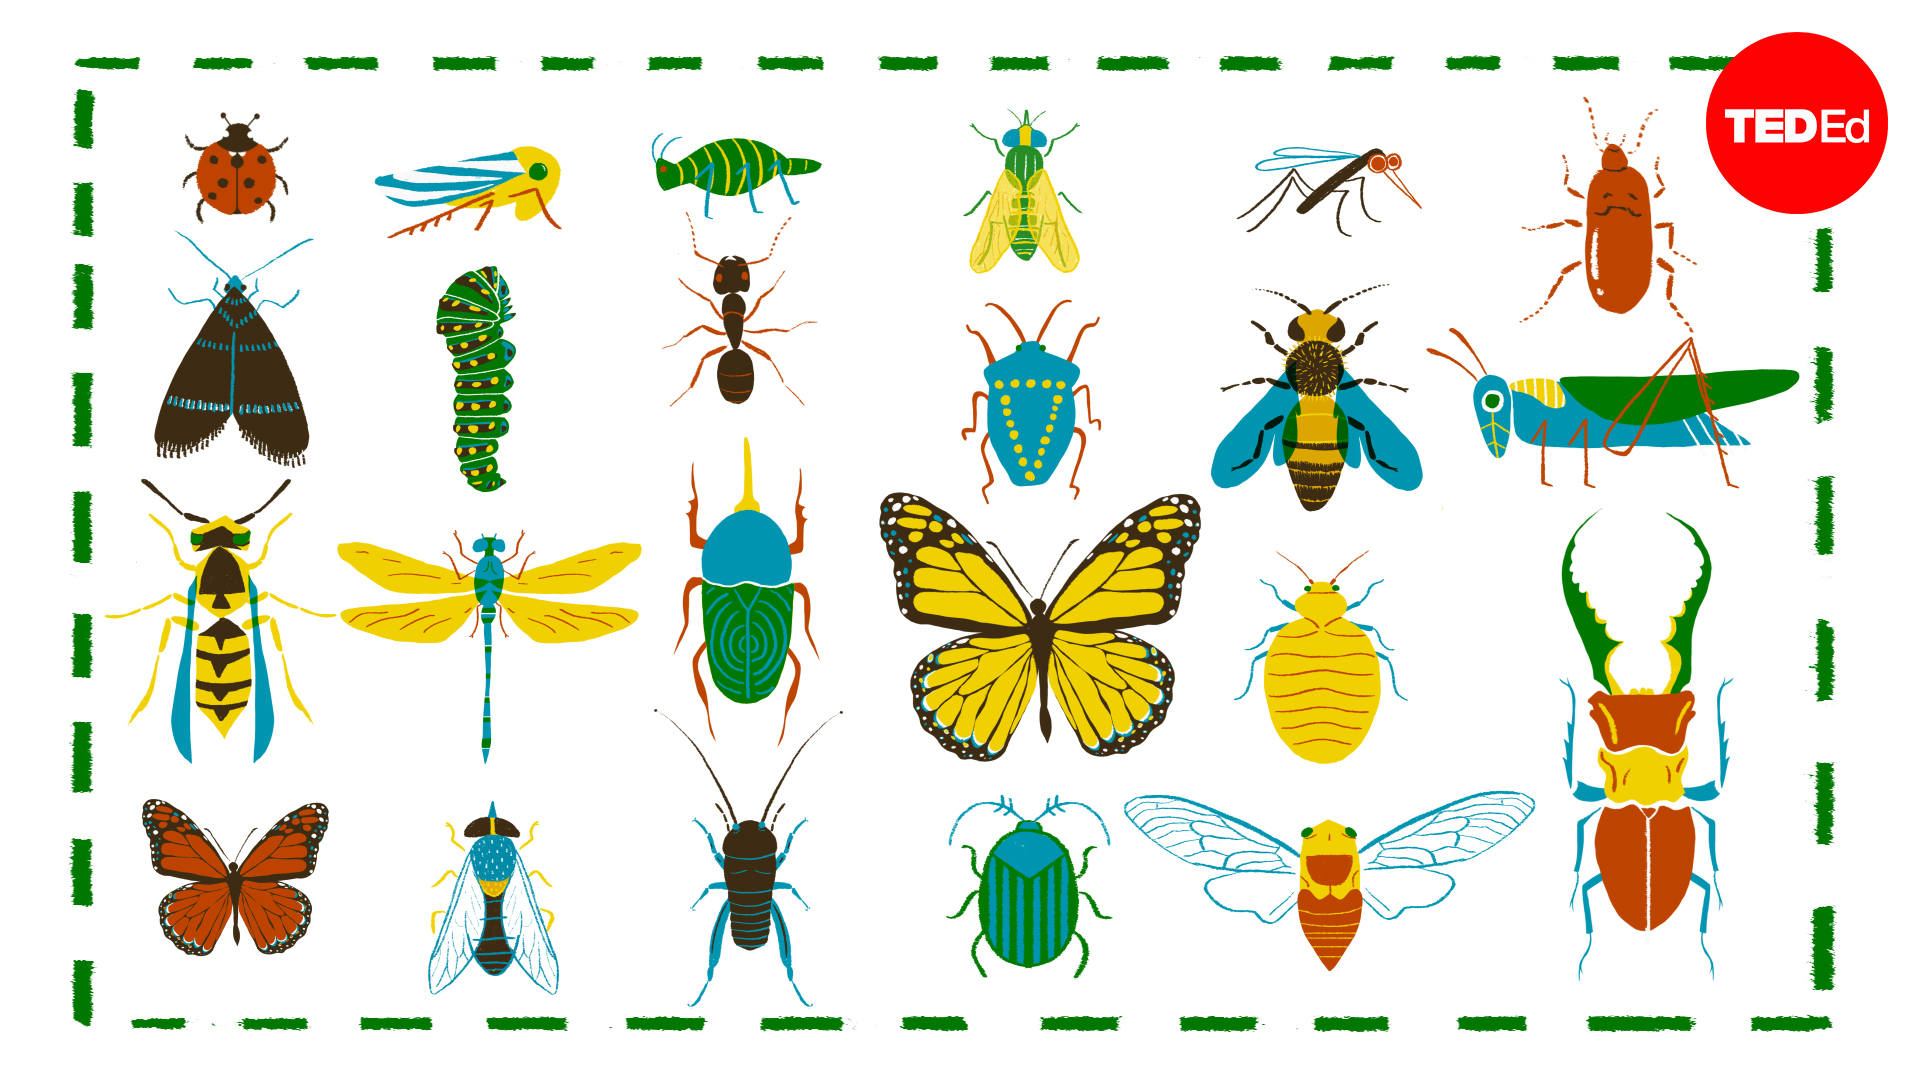 A simple way to tell insects apart